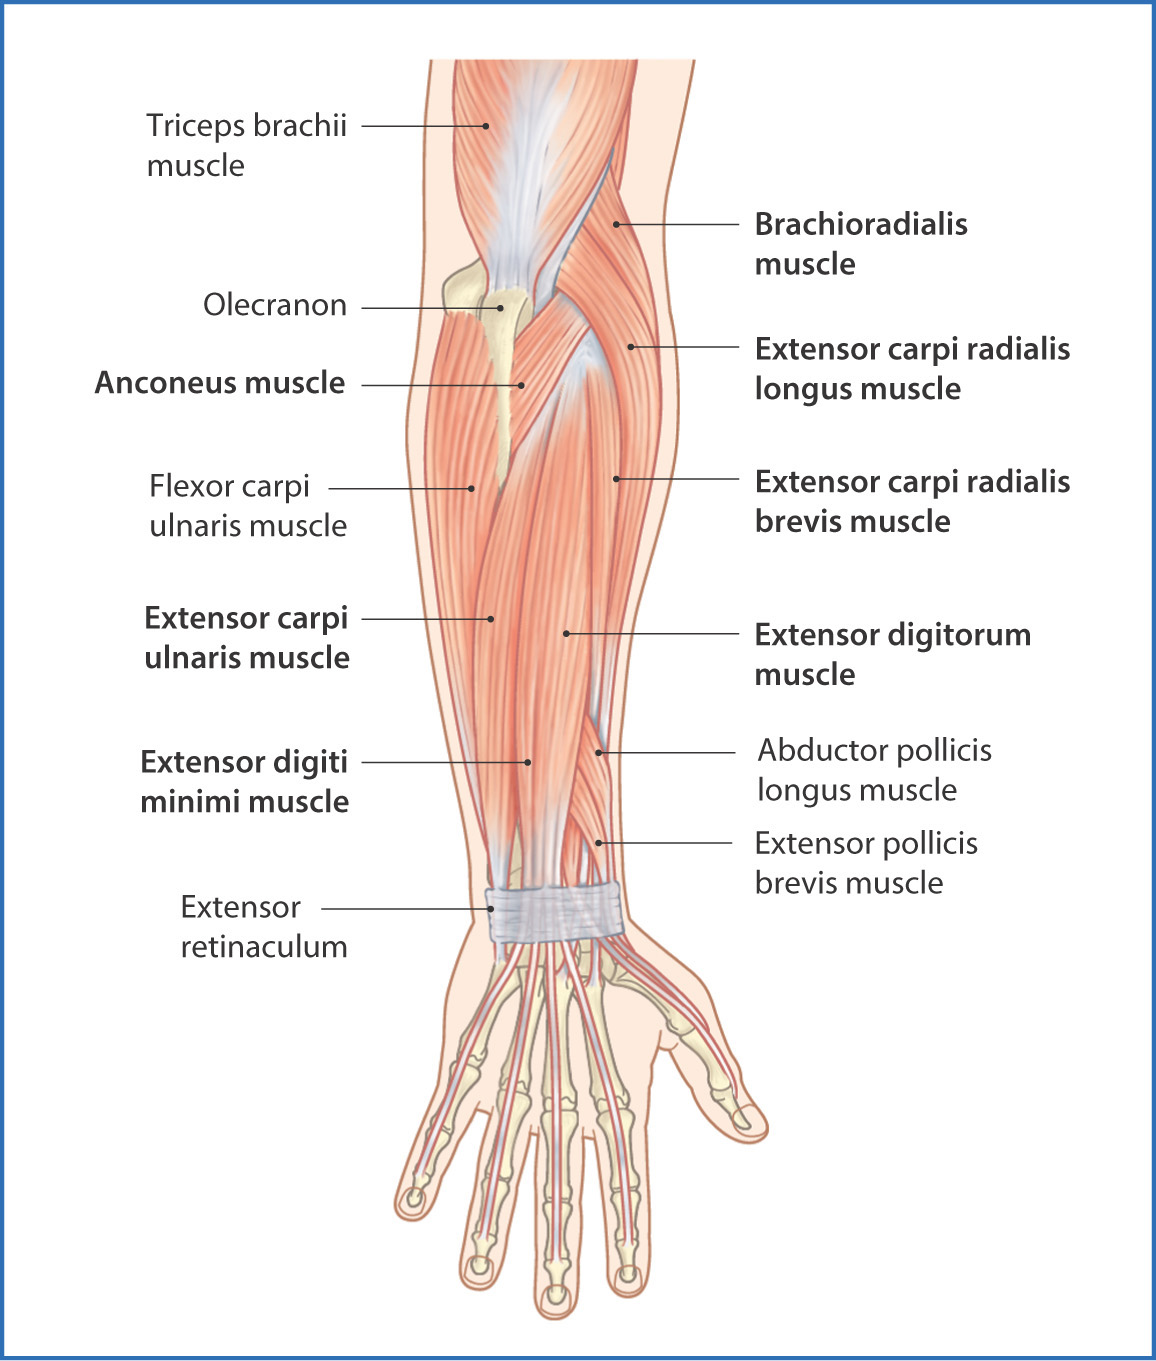 the main function of the forearm muscles (except for the brachioradialis  and supinator) is extension of the wrist and fingers